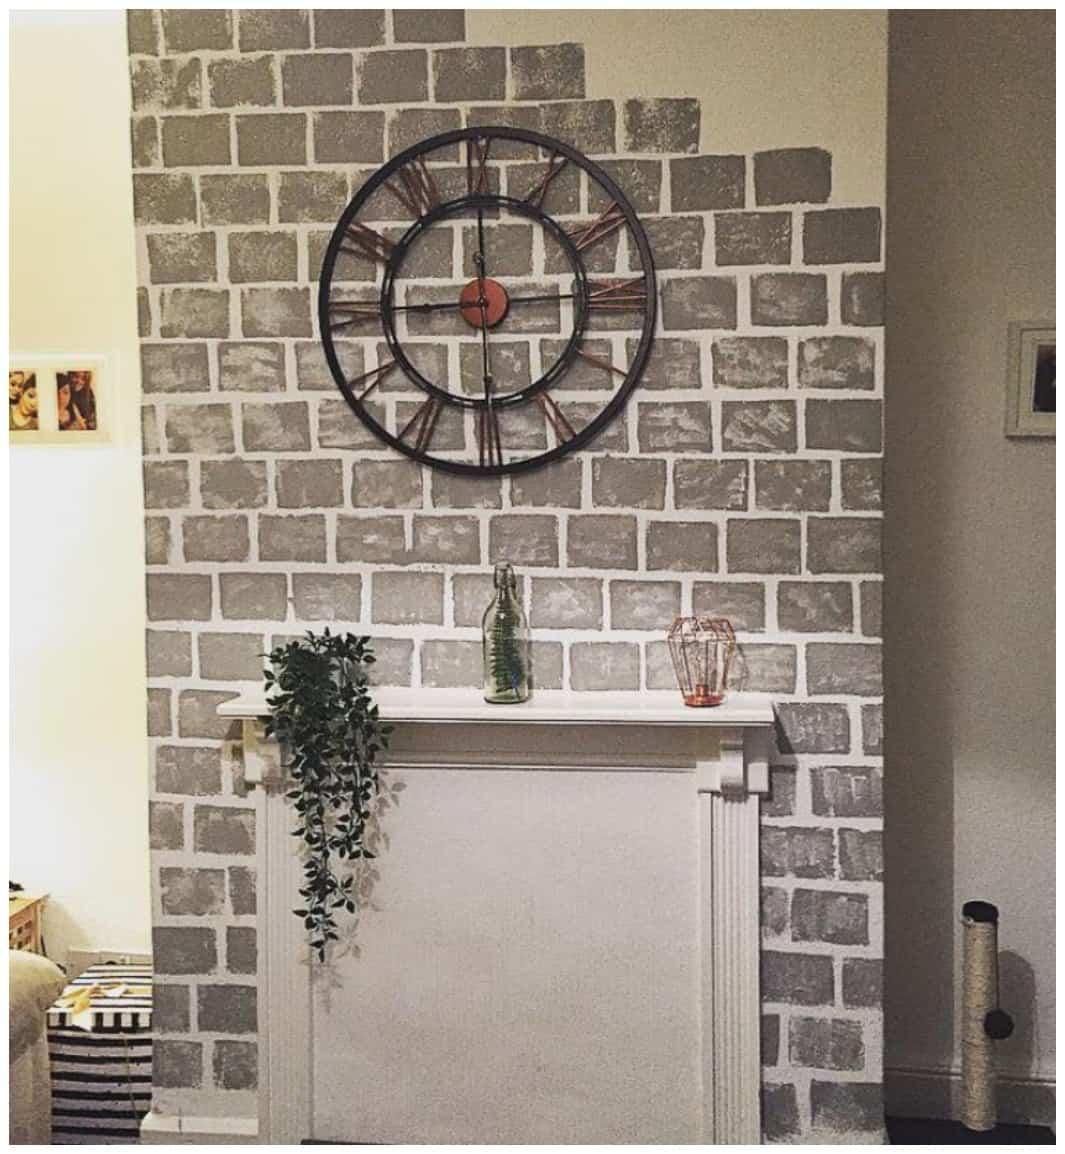 This is How to Paint a Faux Brick Fireplace! What a fun DIY Project Idea and simple too! This was done with a sponge and paint! The whole project takes 40 mins